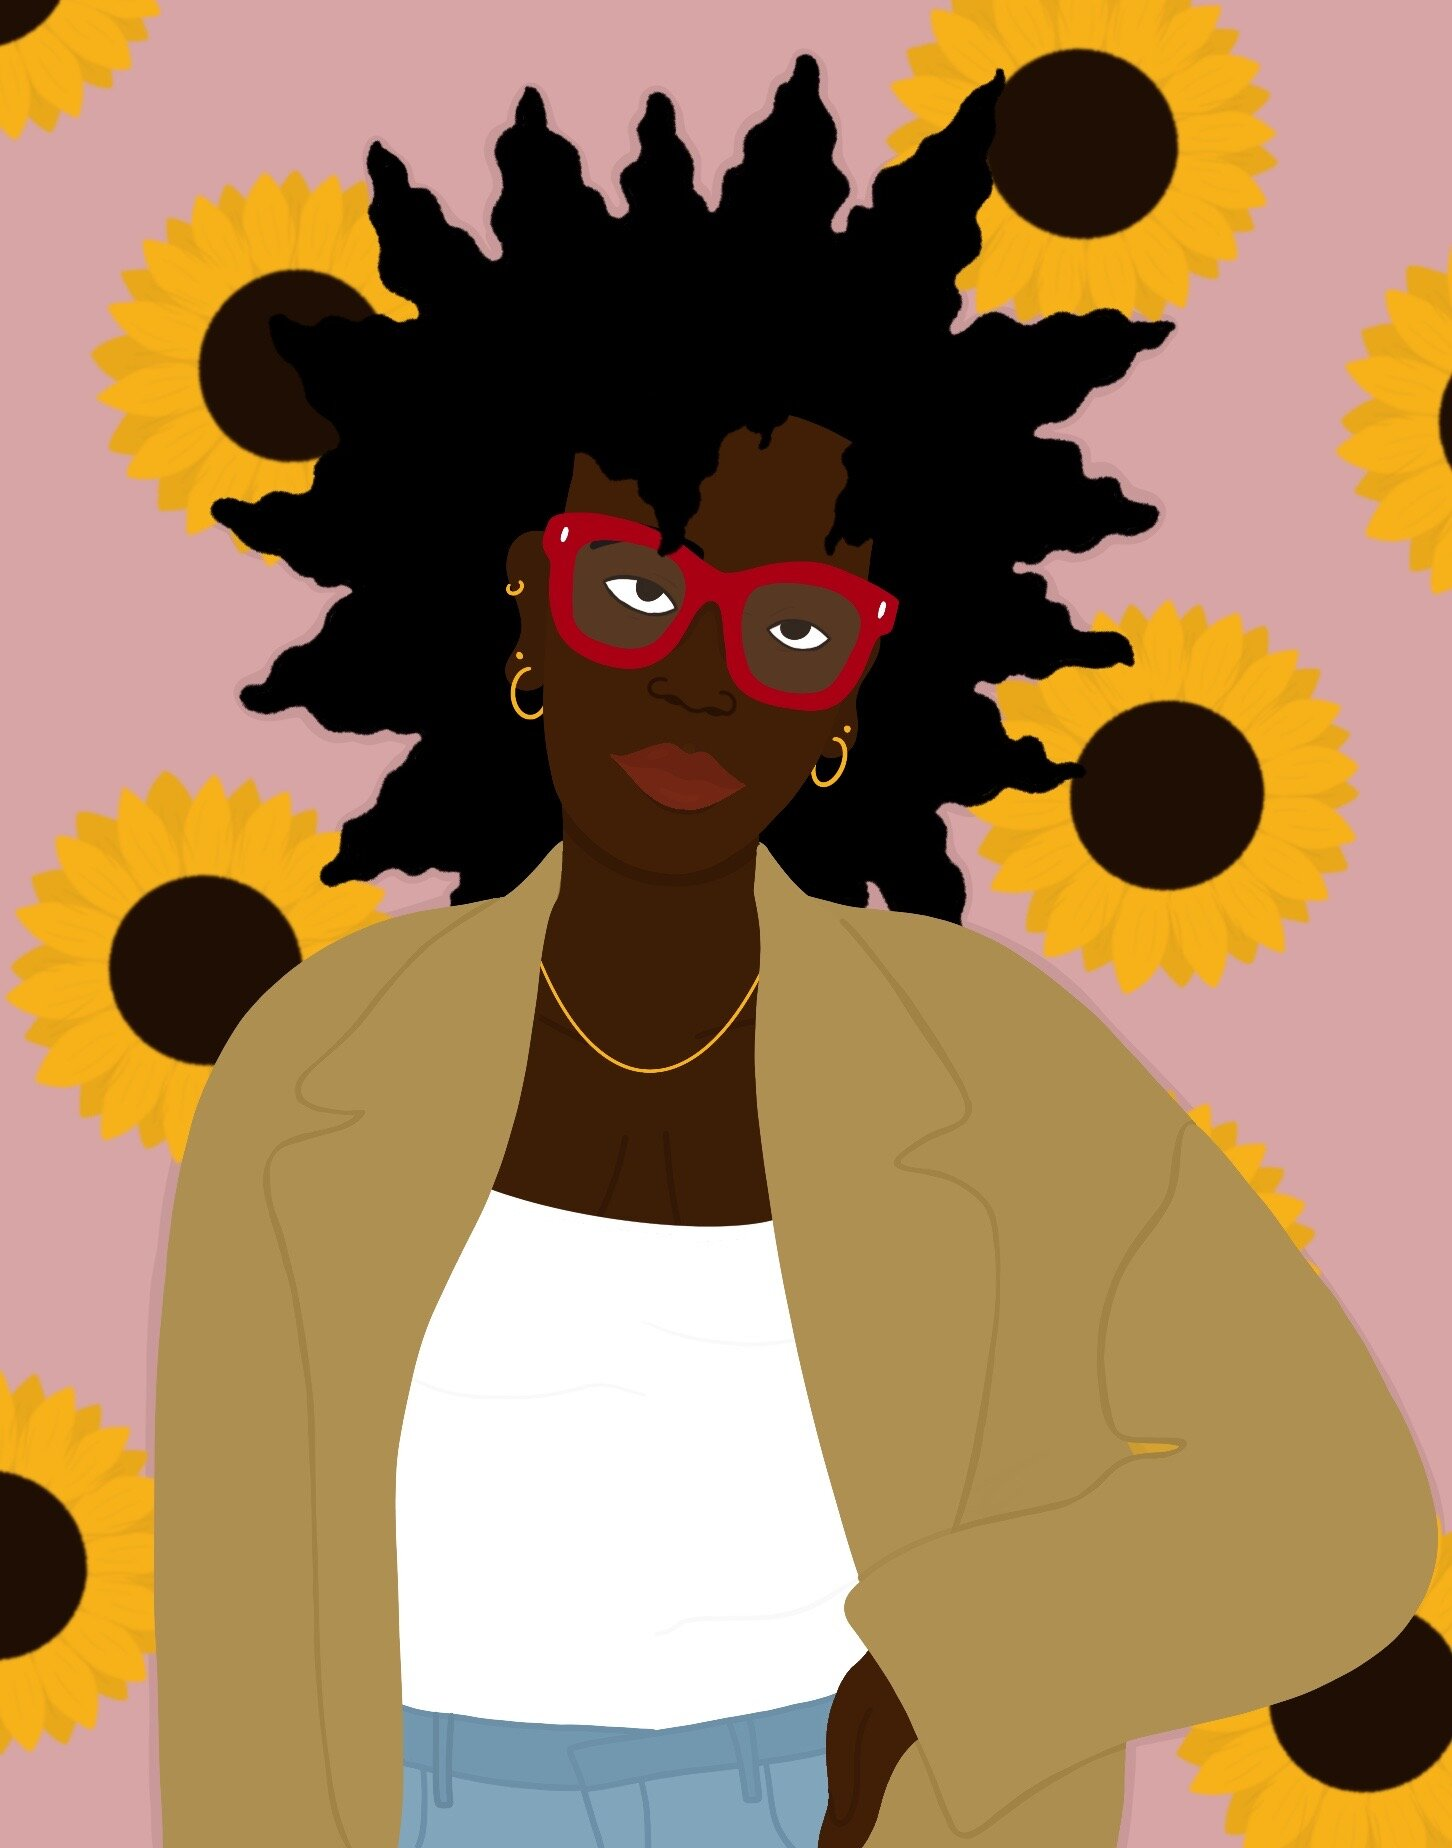 A woman in a camel coat with big red glasses poses with her hand on her hip in front of a pink background with sunflowers.